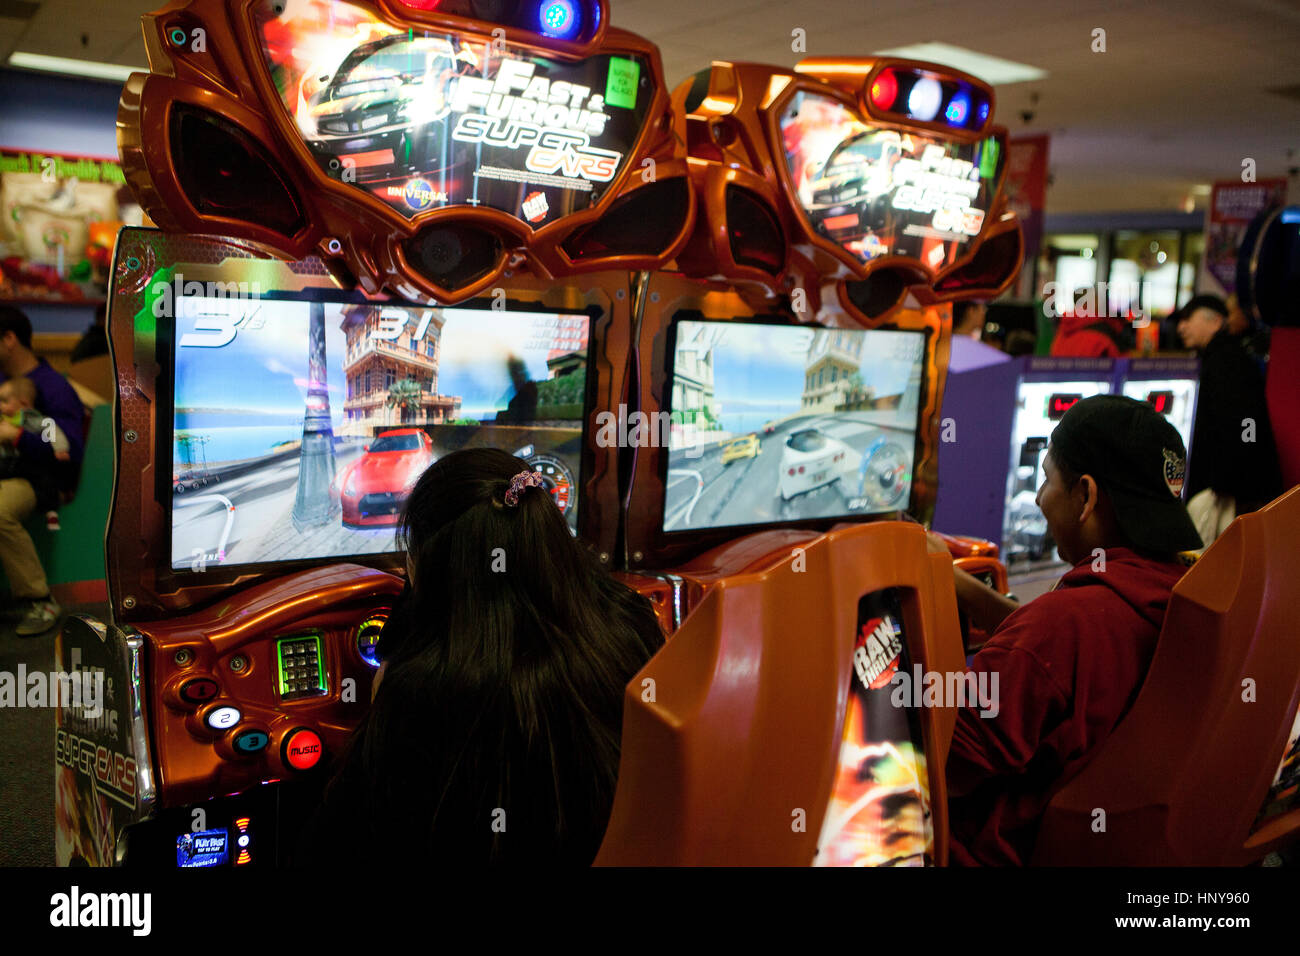 People playing auto racing video game at video arcade - USA - Stock Image